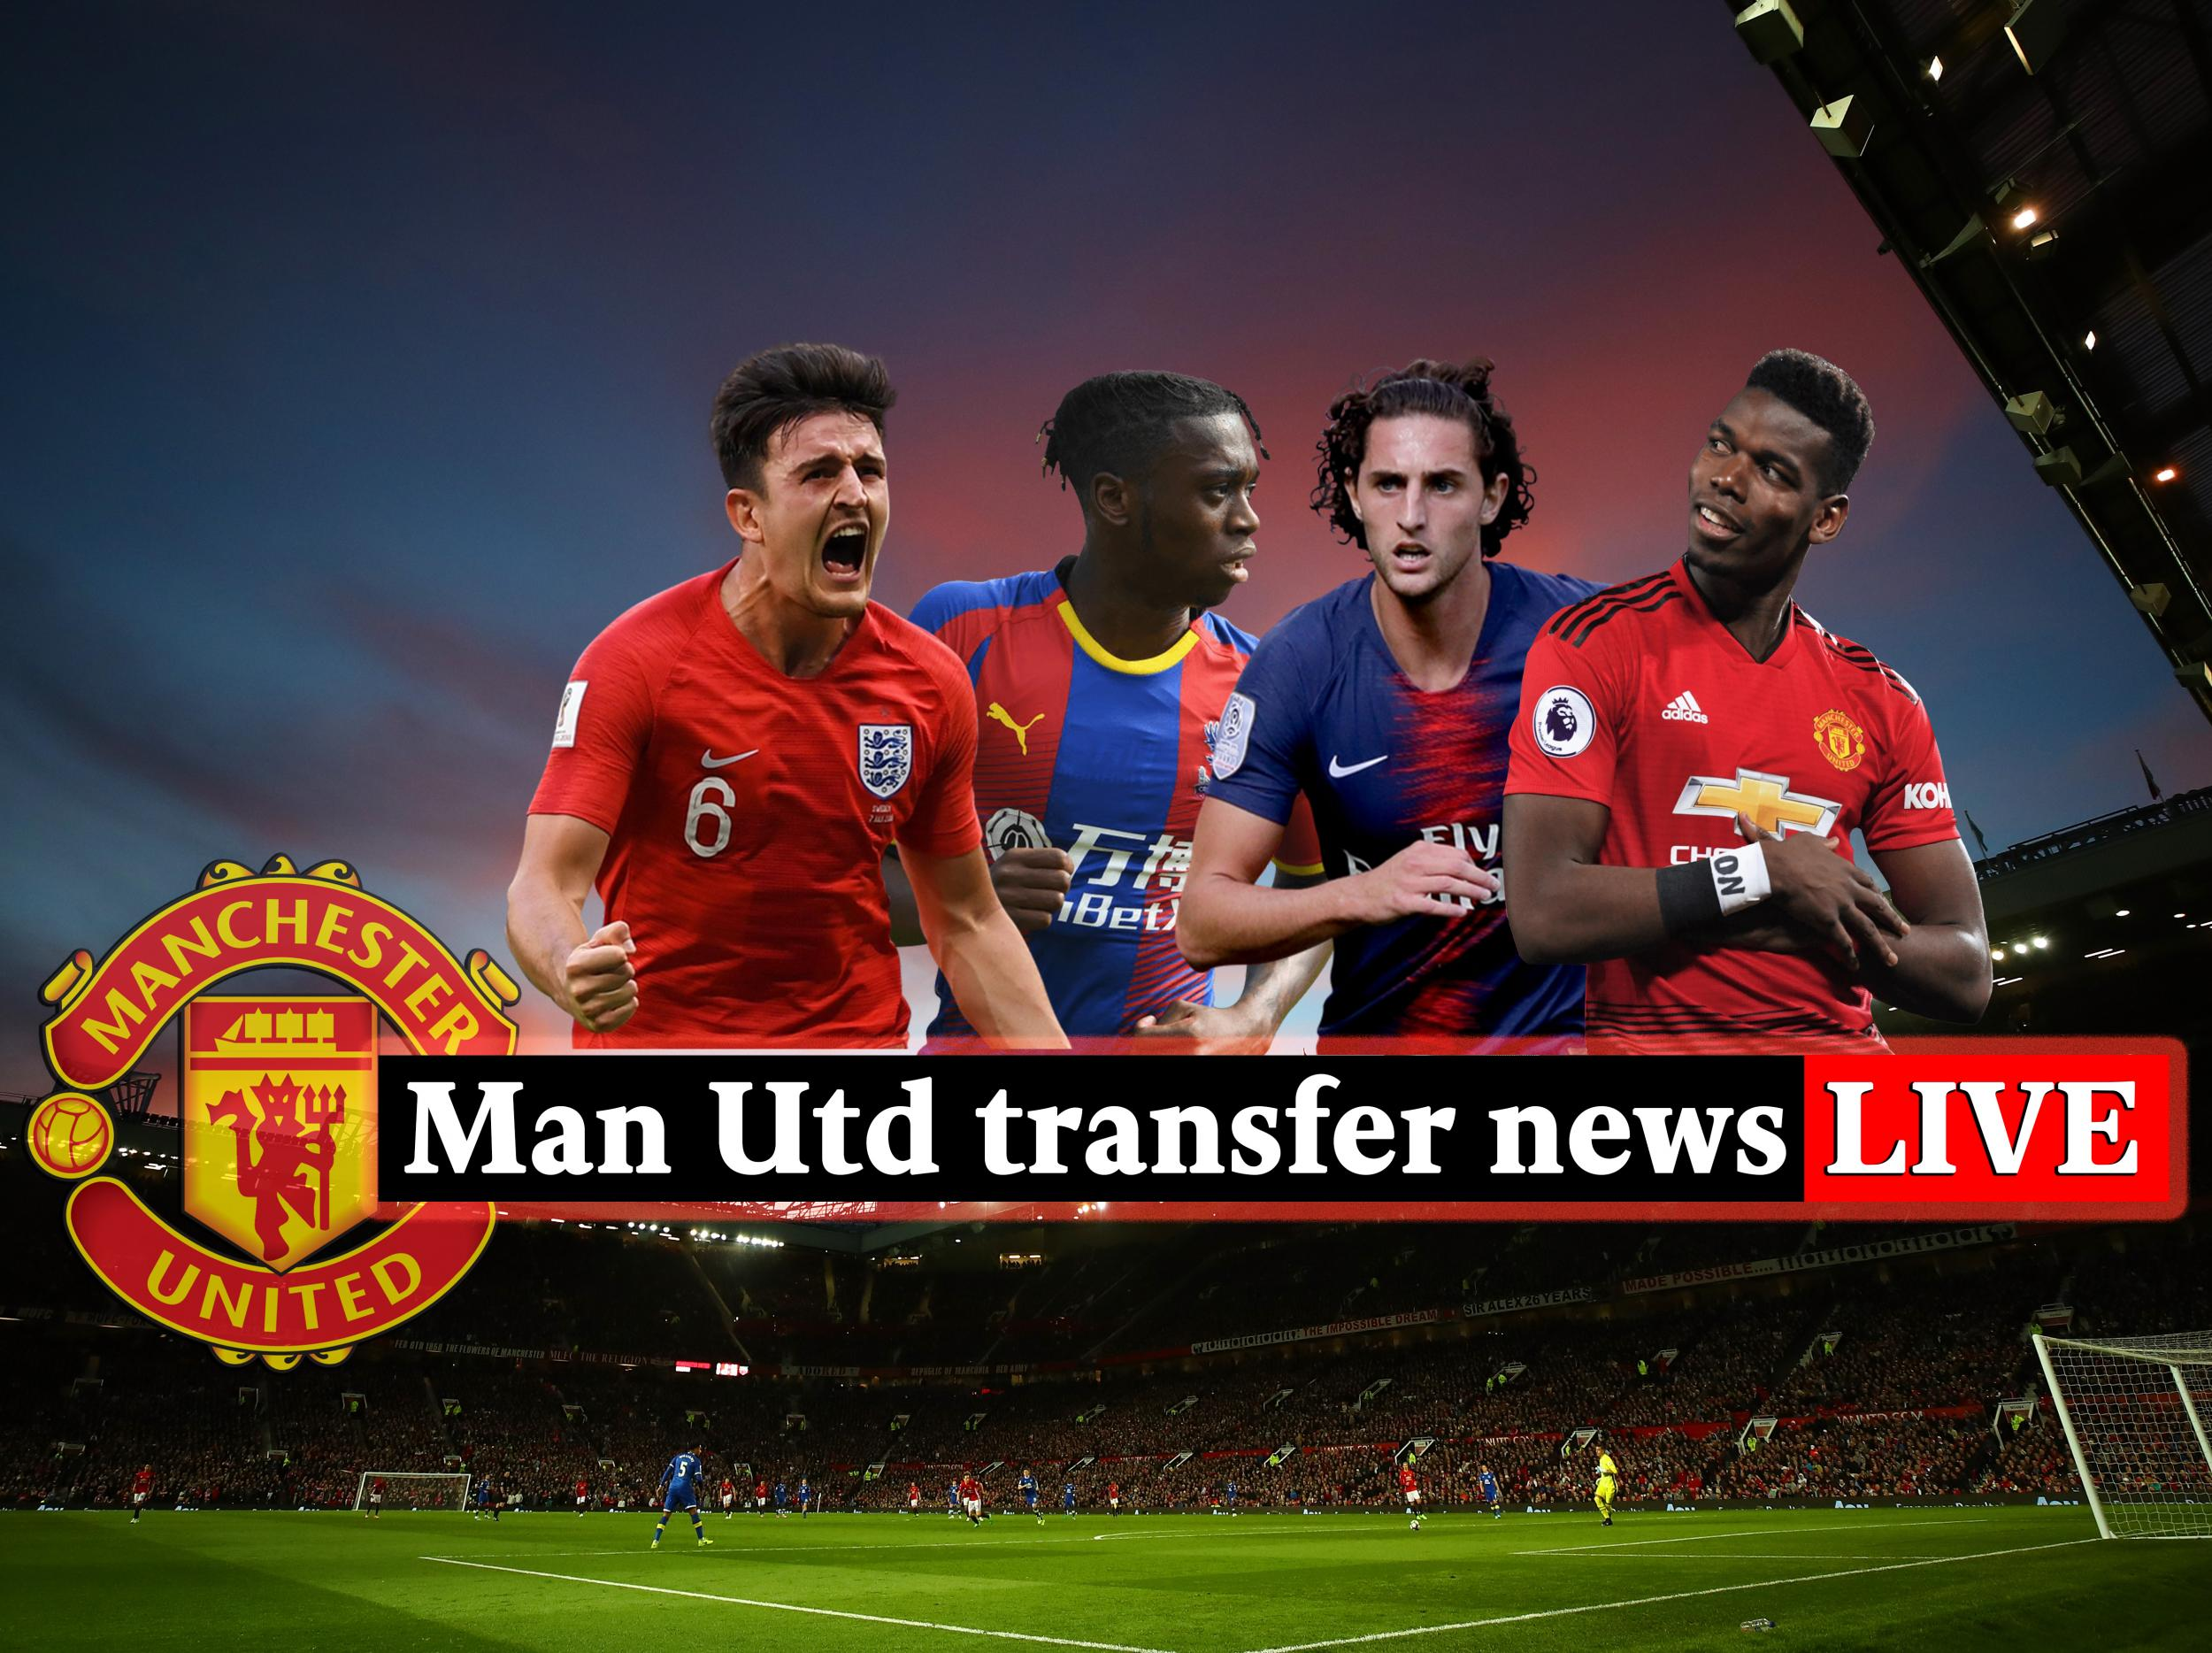 Man Utd transfer news LIVE at 5pm: Mata signs new deal with